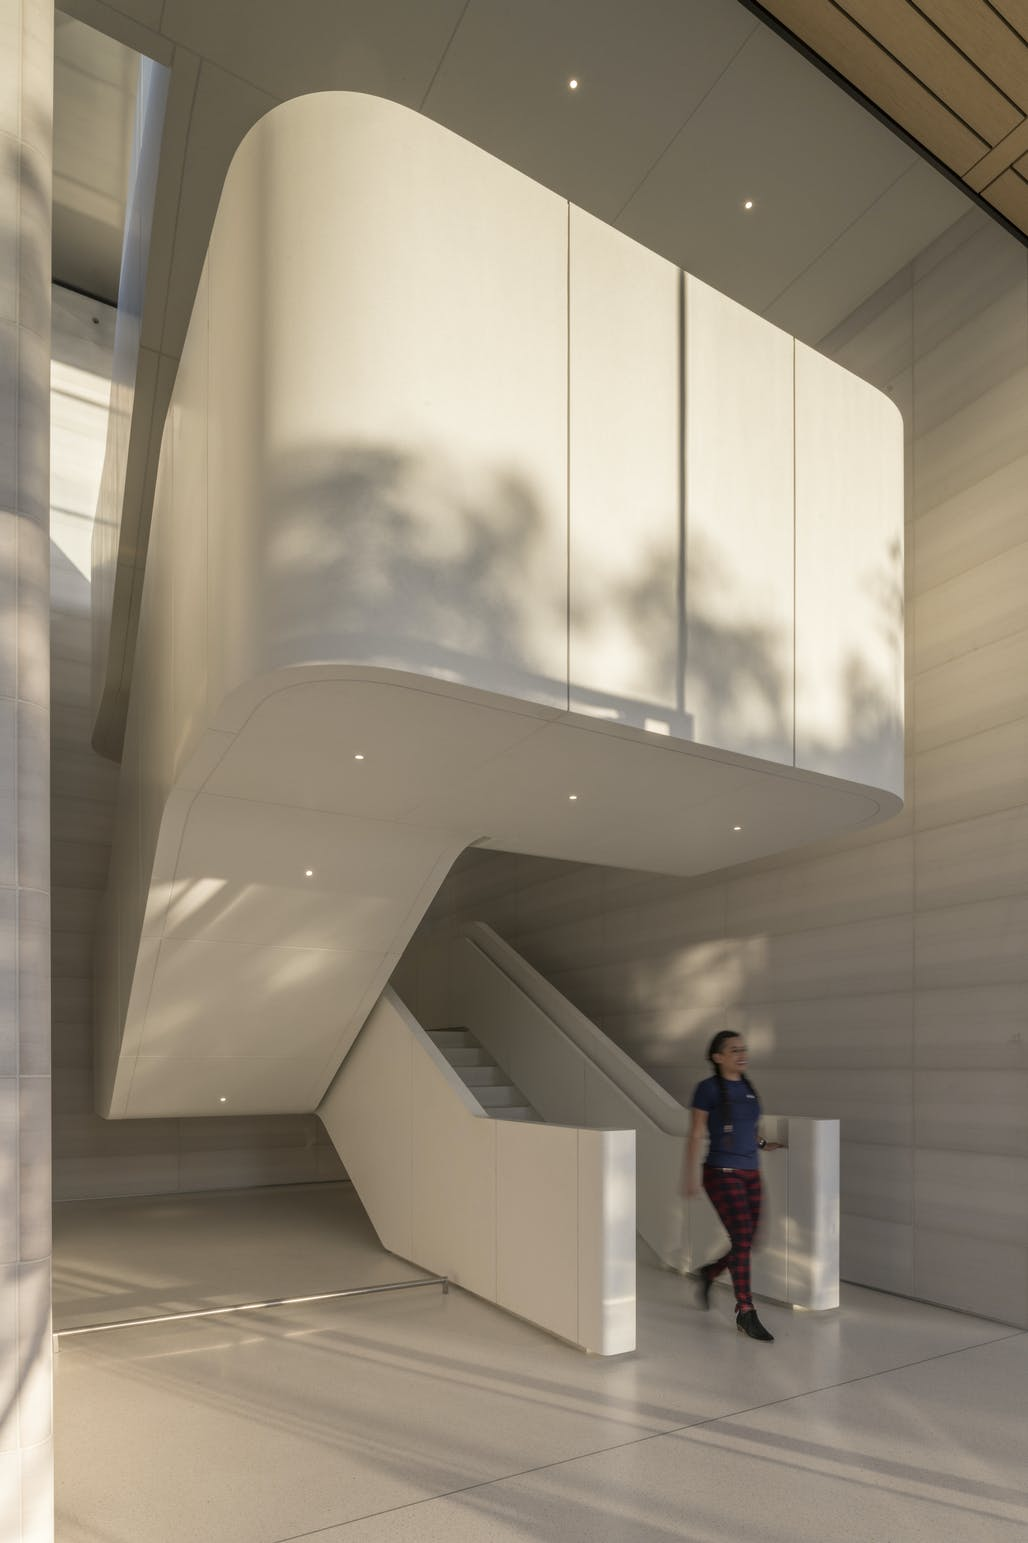 New Images Of Apple Park Visitor Center As It Opens To The